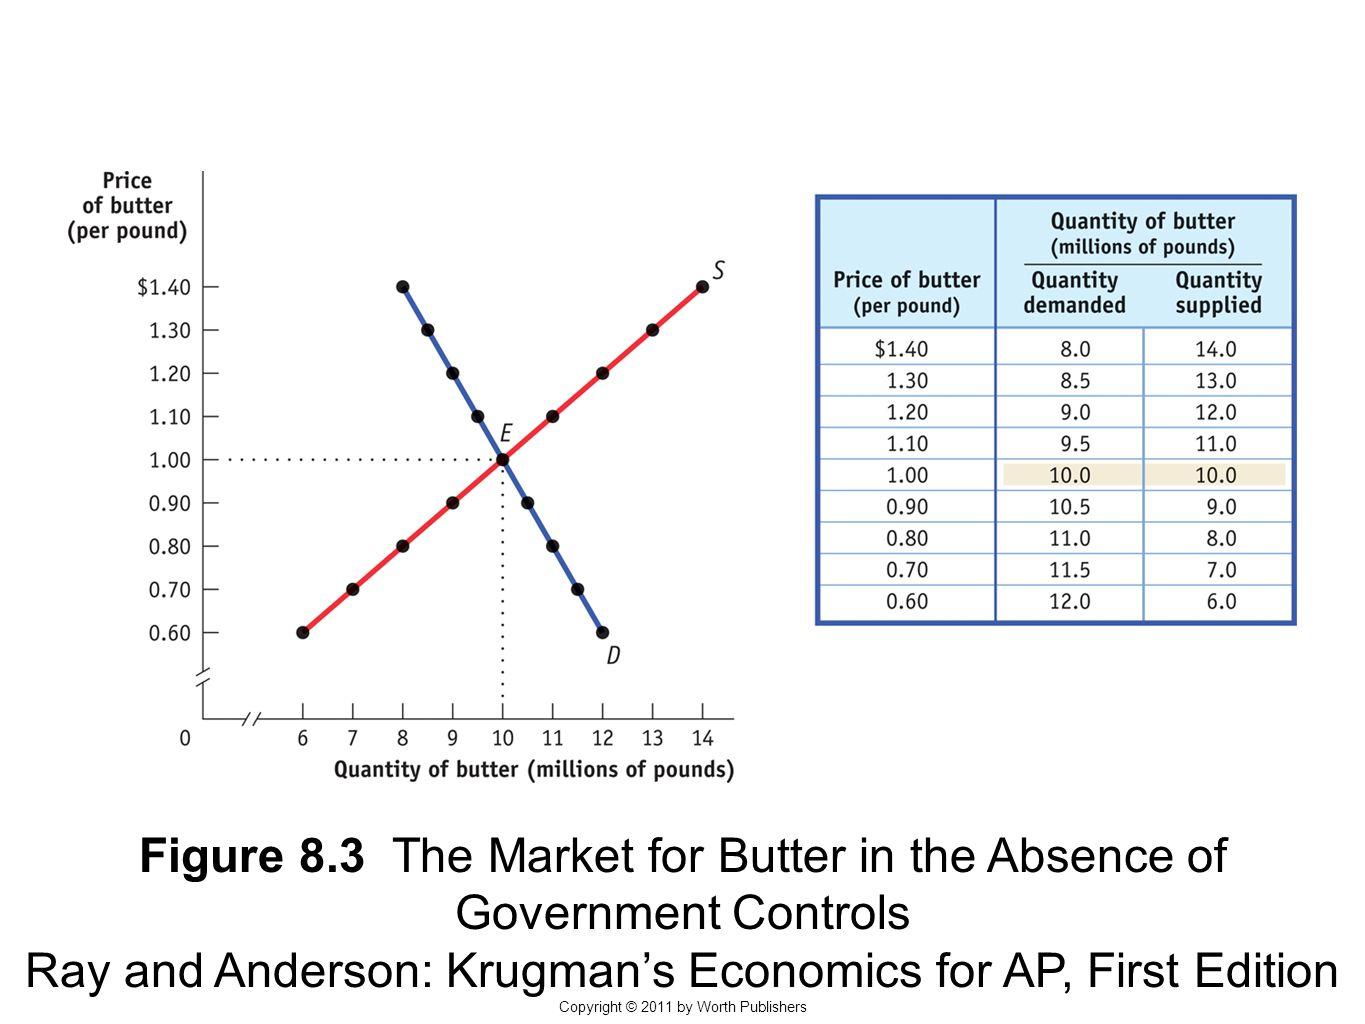 Figure 8.3 The Market for Butter in the Absence of Government Controls Ray and Anderson: Krugman's Economics for AP, First Edition Copyright © 2011 by Worth Publishers